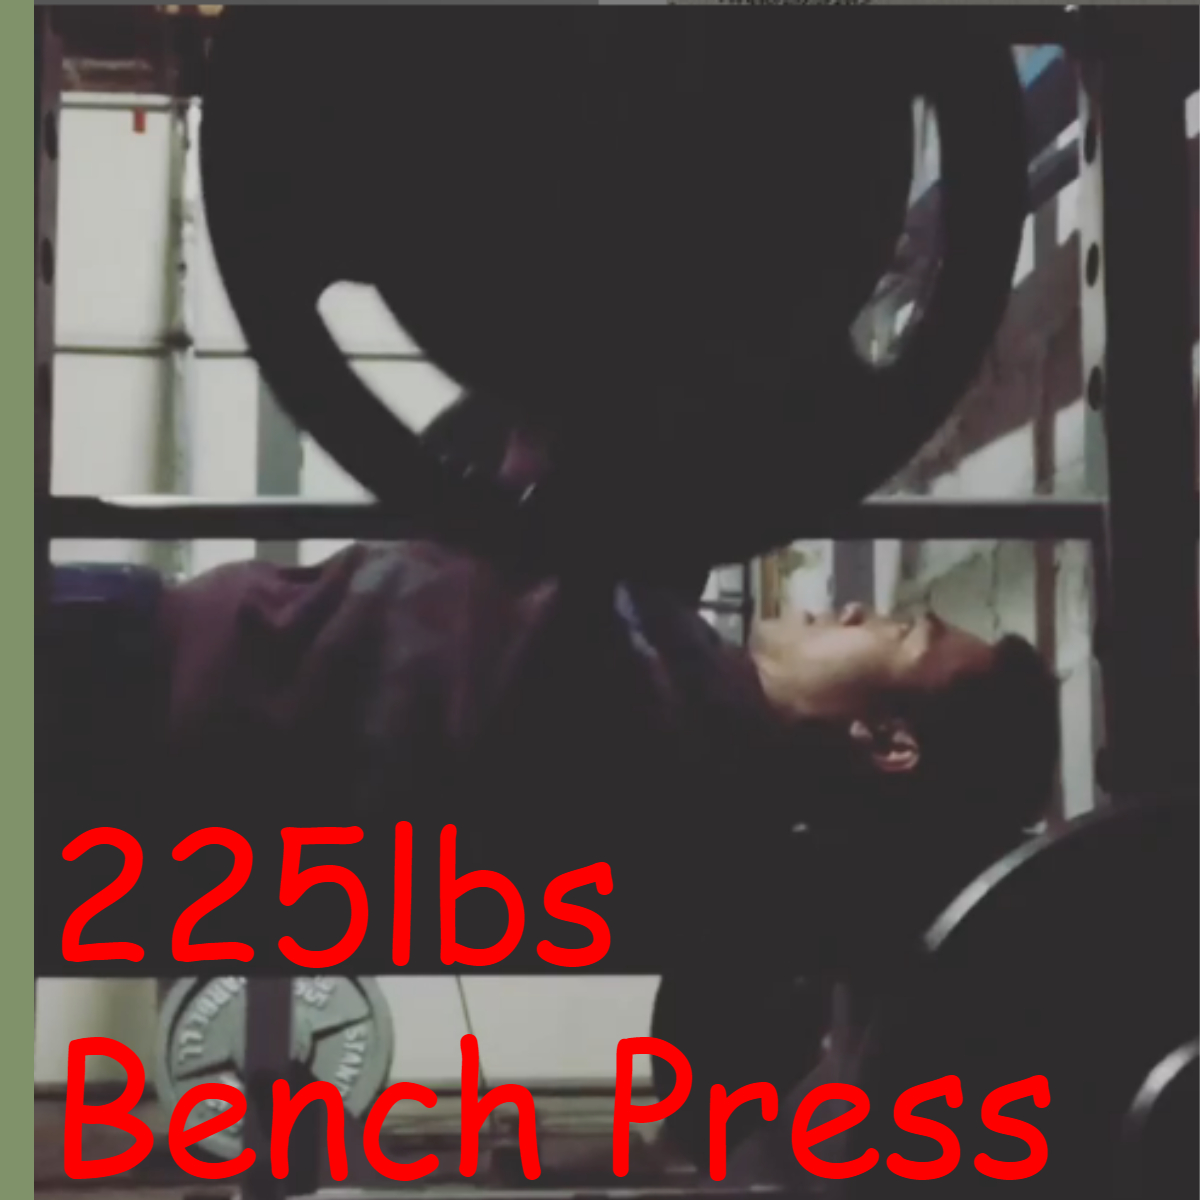 Learn how to get to a 225lb bench